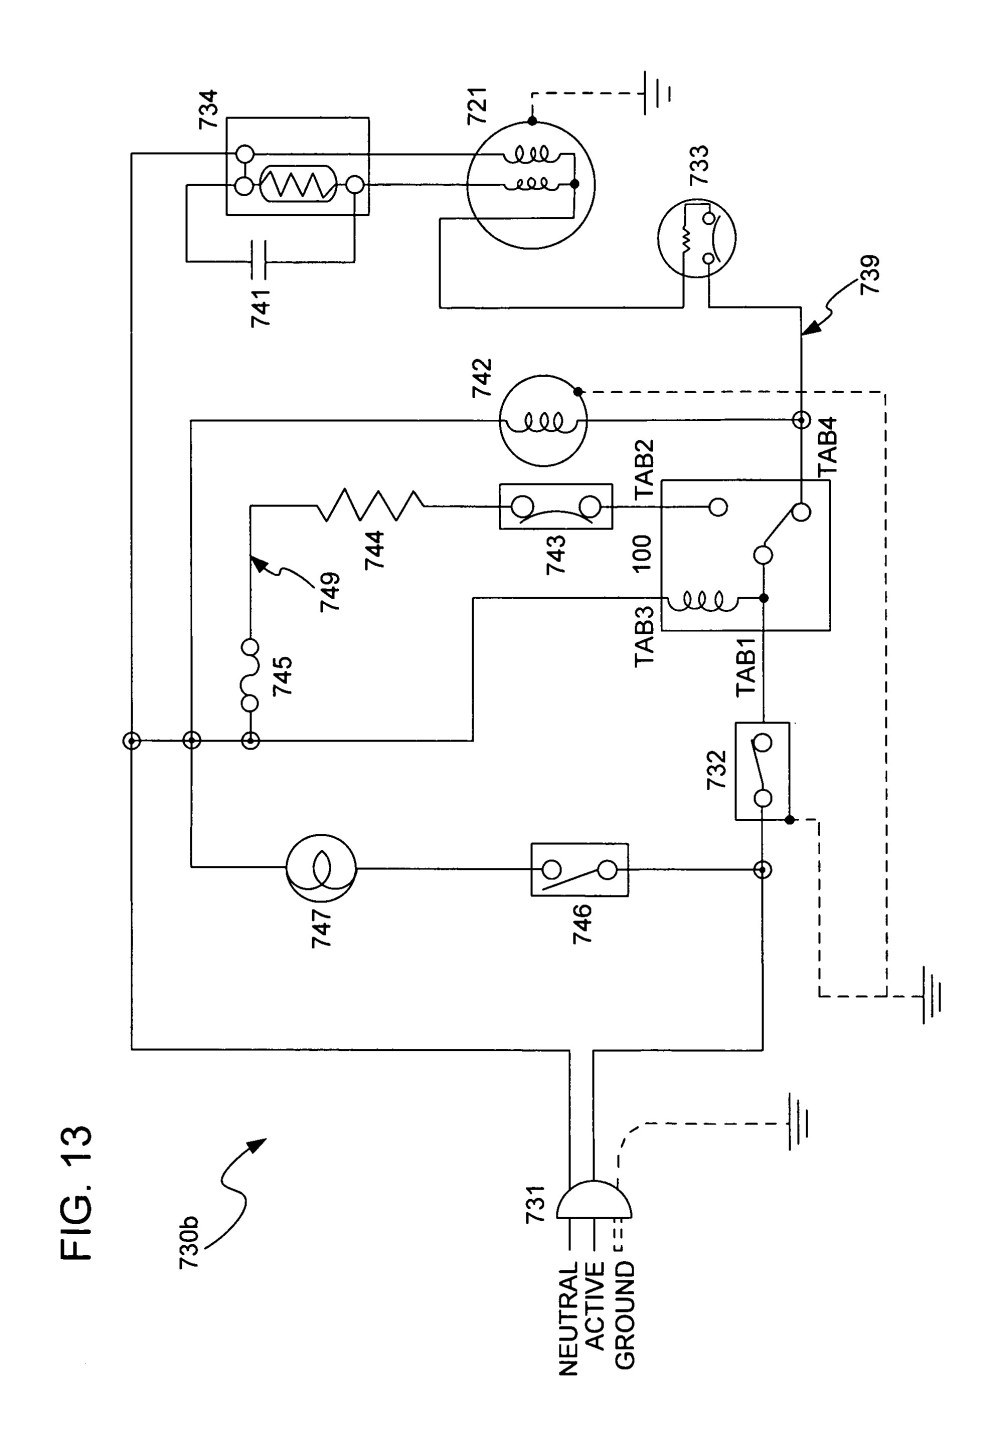 medium resolution of 8145 defrost timer wiring diagram troubleshooting support for defrost timer wiring diagrams moreover paragon defrost timer wiring